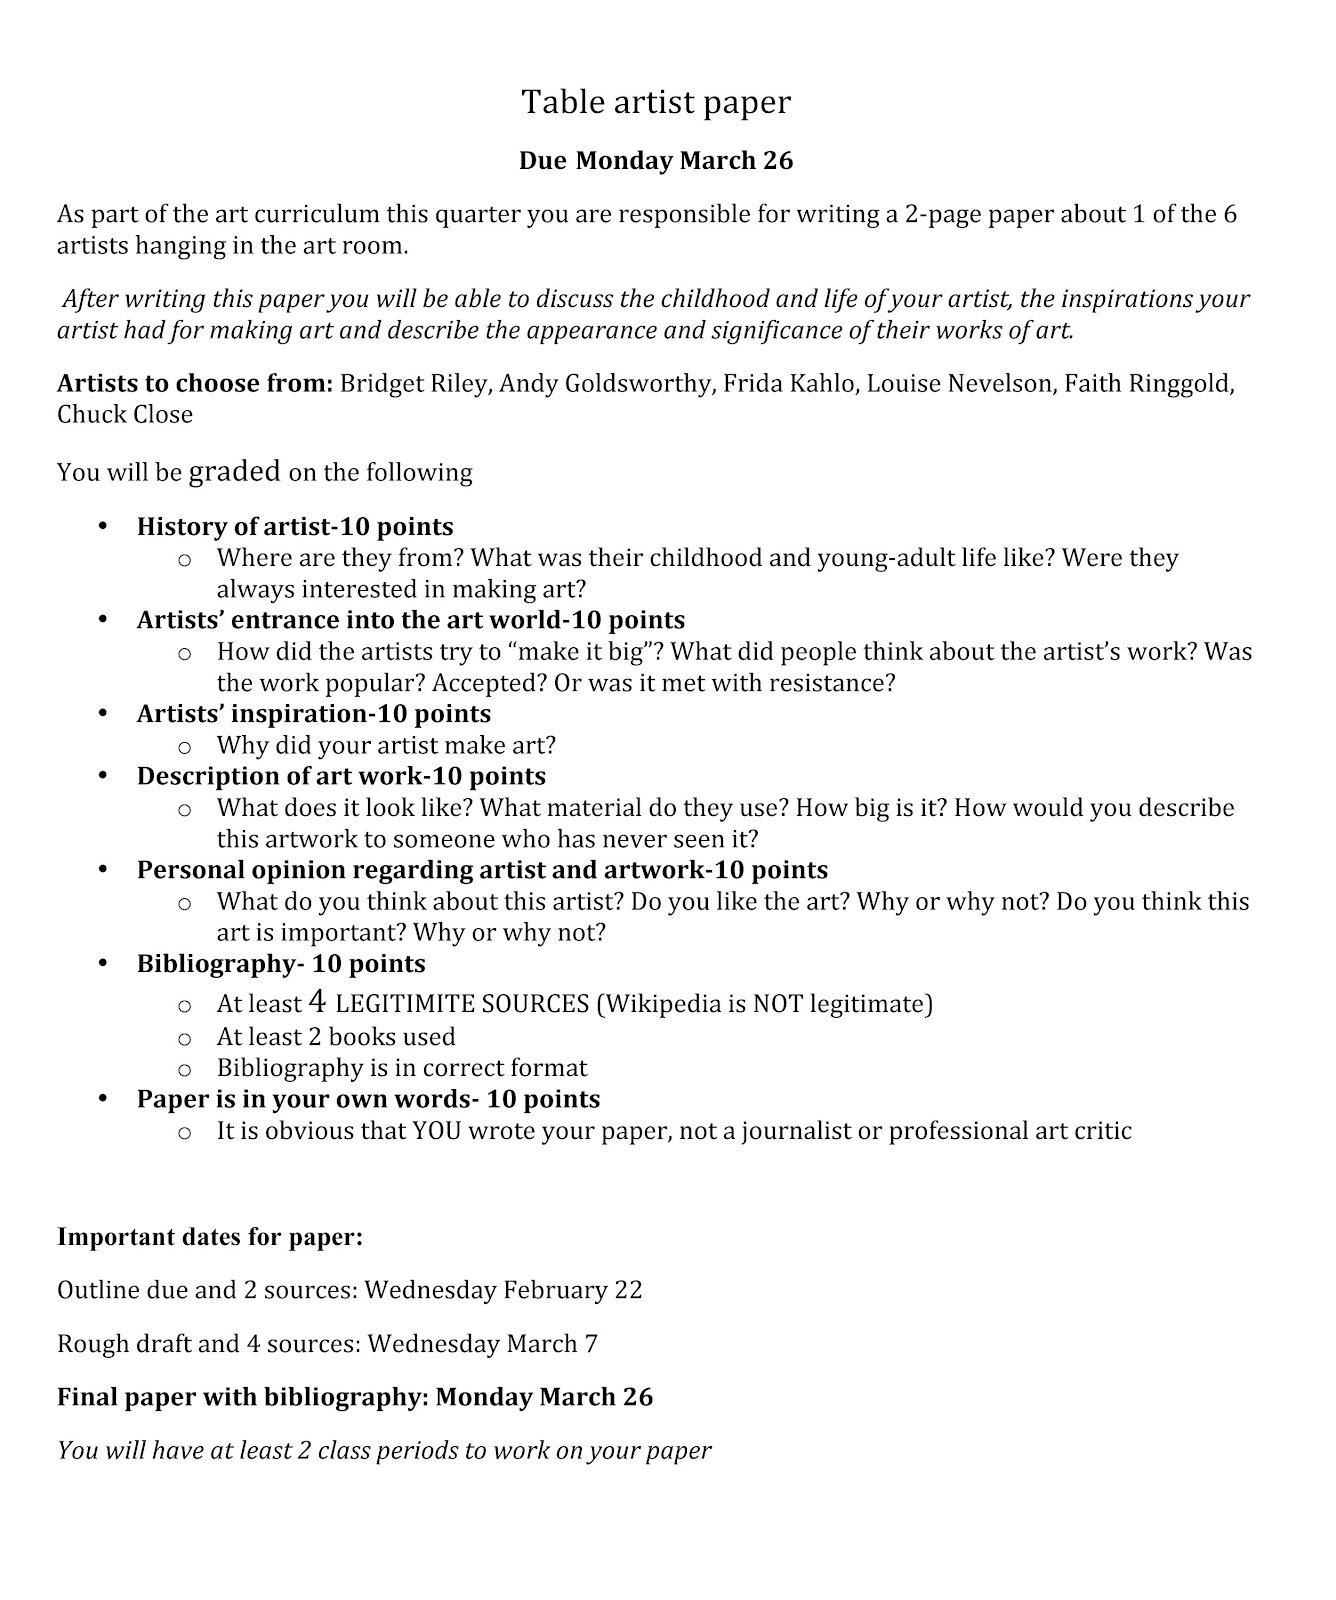 013 Tableartistpaper Middle School Research Paper Phenomenal Questions Science Topics Civil War Topic Full